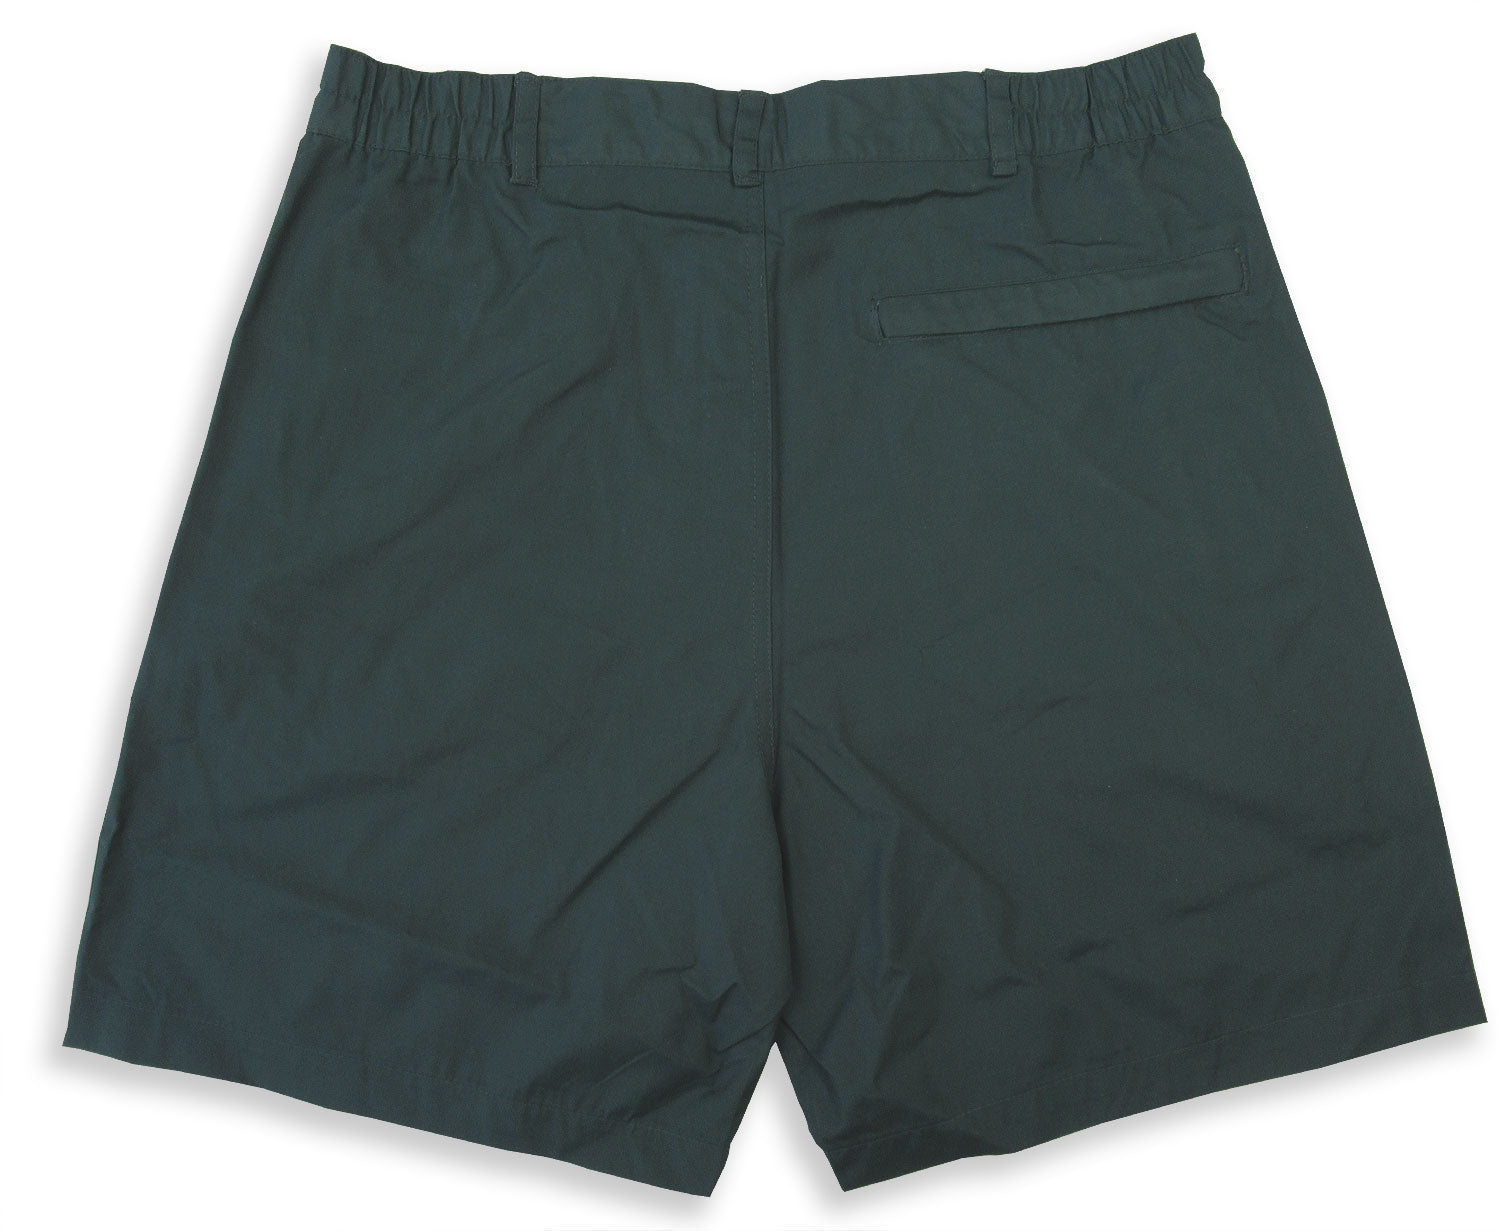 rear view Regatta Men's Action Shorts WITH LOTS OF POCKETS in Green